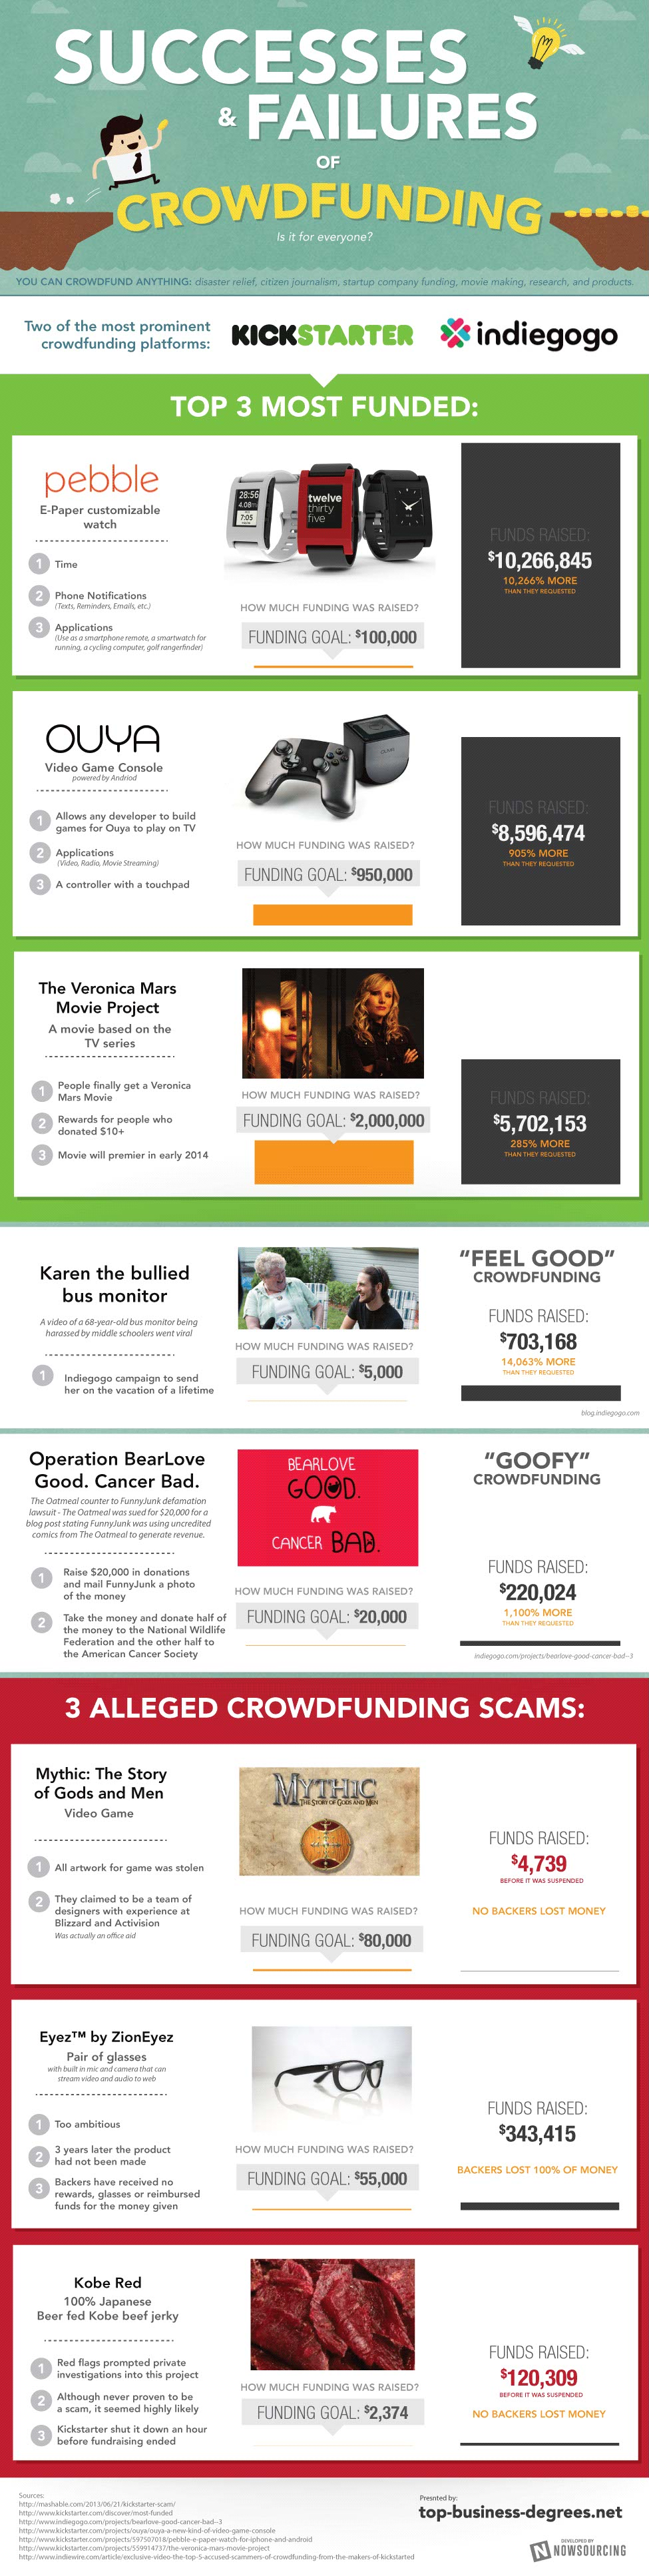 Crowdfunding Ups & Downs-Infographic